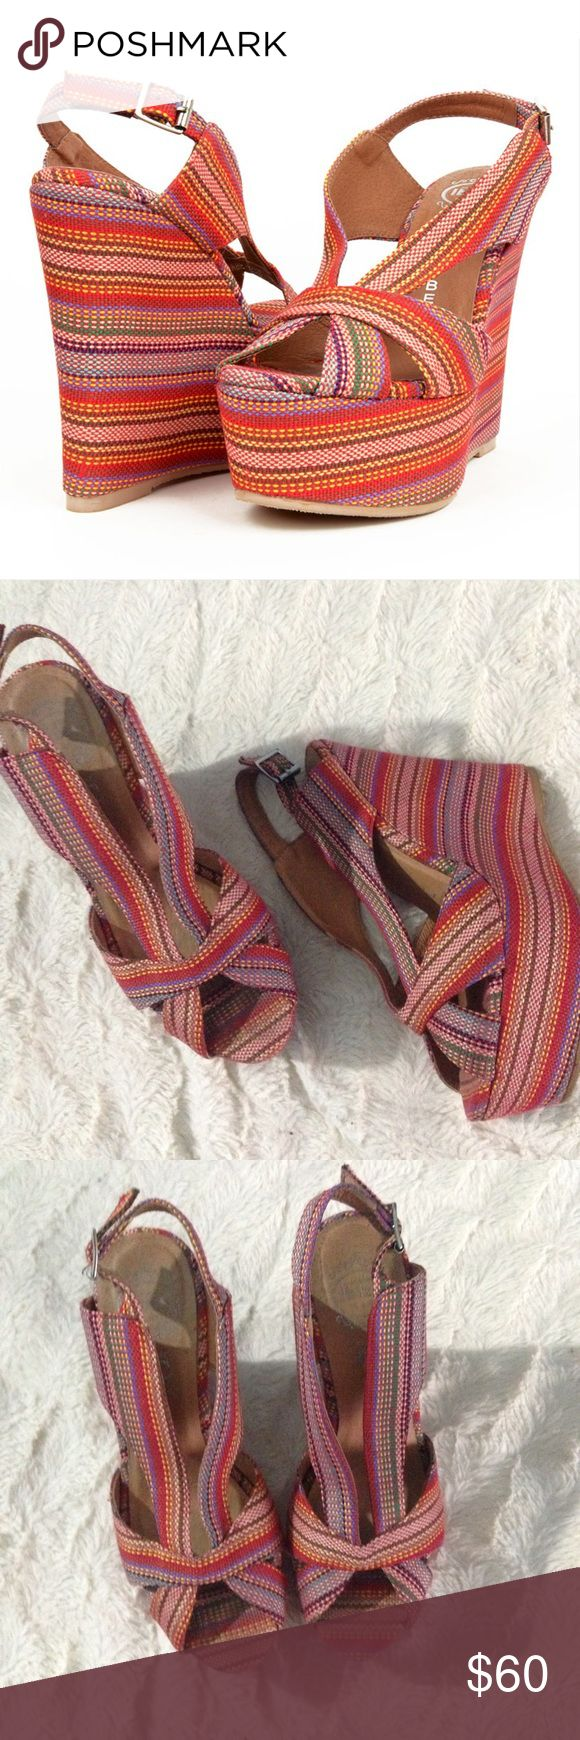 "Jeffrey Campbell Mariel Red Aztec Stripe Wedges Take a trip over the rainbow, and grab a pair of Jeffrey Campbell Mariel Red Aztec Stripe Wedges while you're there! Shades of red mingle with all the colors of the rainbow in a vibrant weave of stitched stripes, for a sandal that is a dream come true! Open toe upper has the cutest strappy shape, with a delightful silver-buckled slingback. 1.75"" woven toe platform gives the 5"" wedge heel (plus rubber tip) something to build on. Cushioned…"